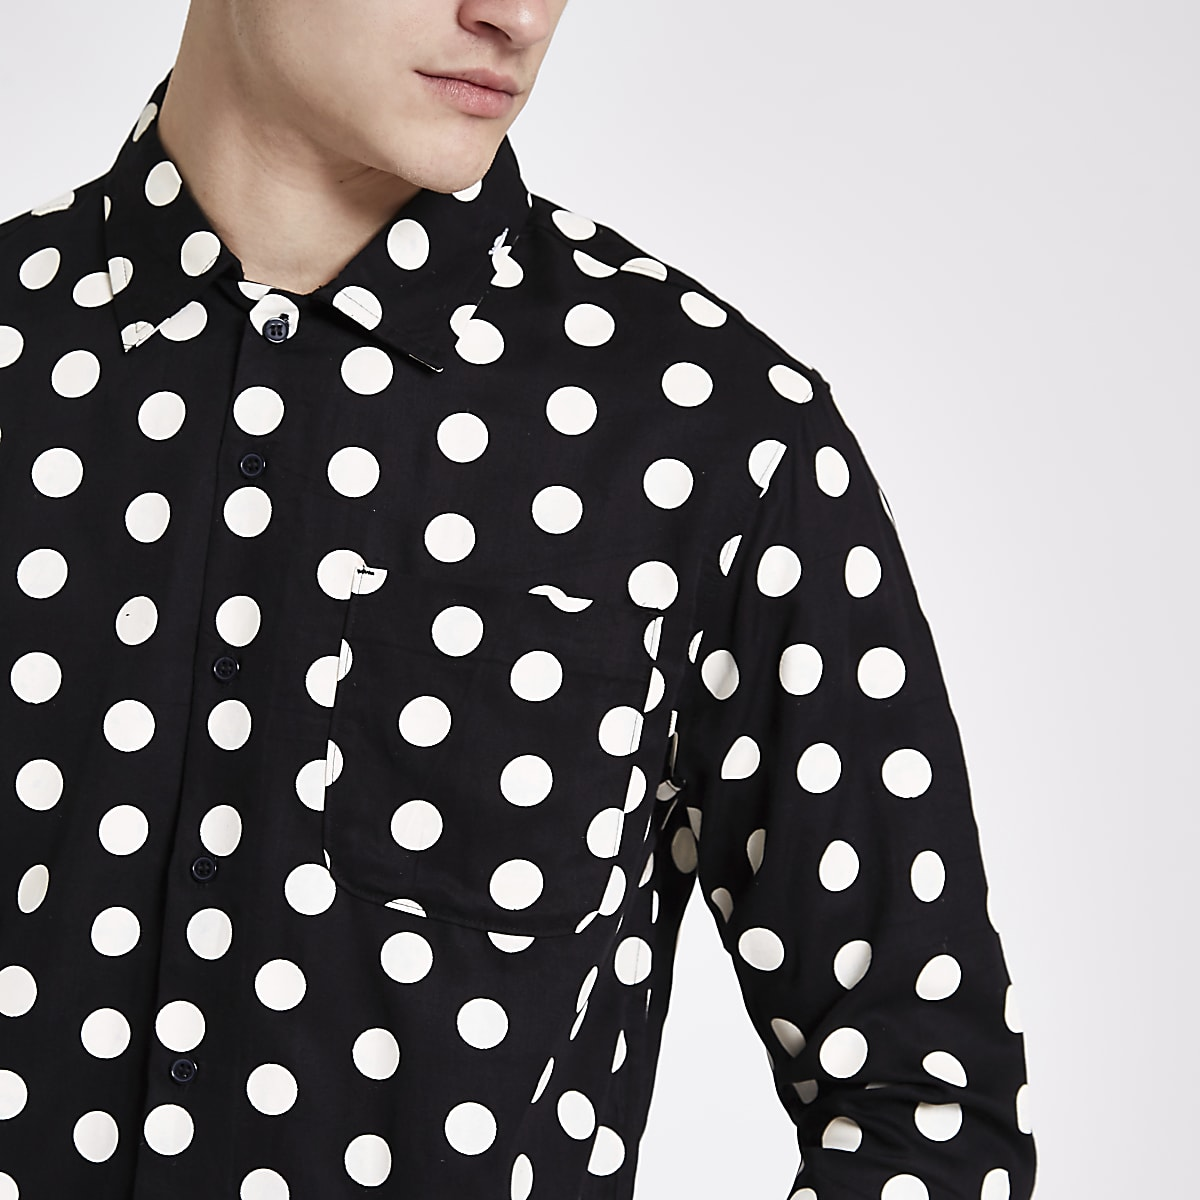 46ca023d8 Bellfield black polka dot button-down shirt - Long Sleeve Shirts - Shirts -  men